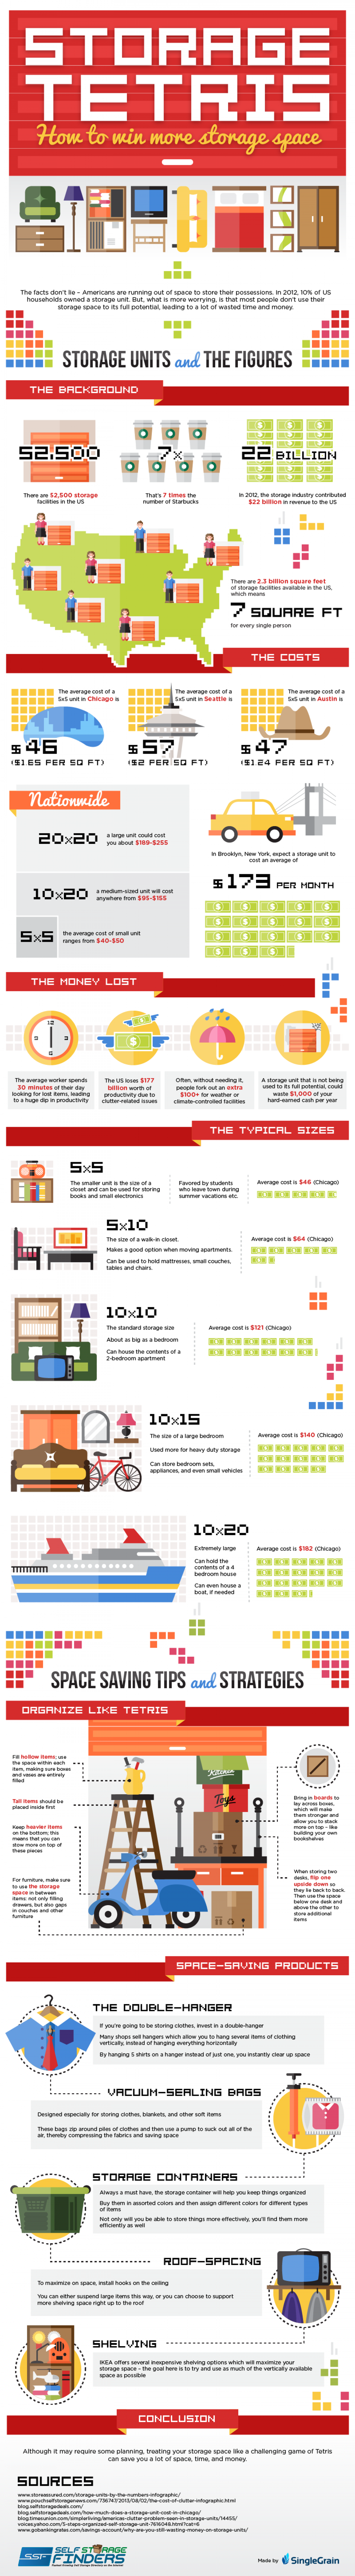 Storage Tetris - How to win more storage space Infographic